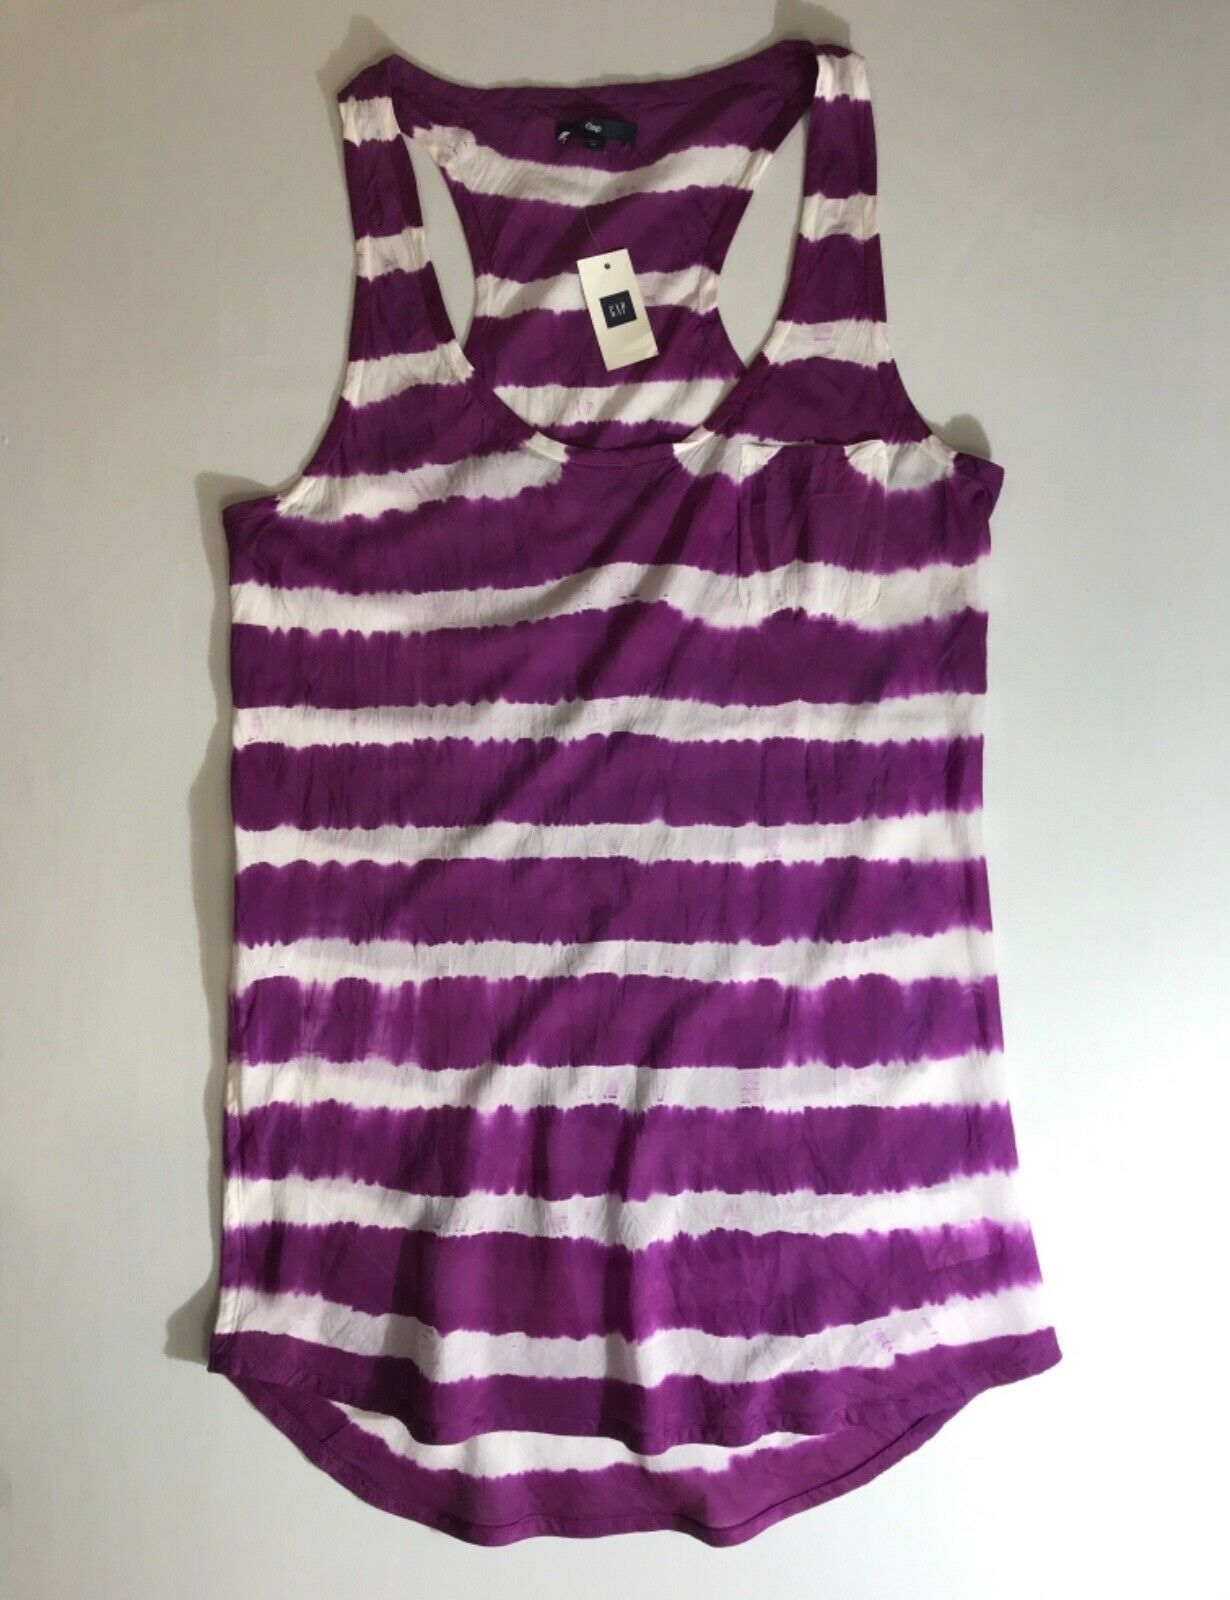 Primary image for Gap Scoop Neck Racer Back Tank Top Purple Silk Blend in size Medium